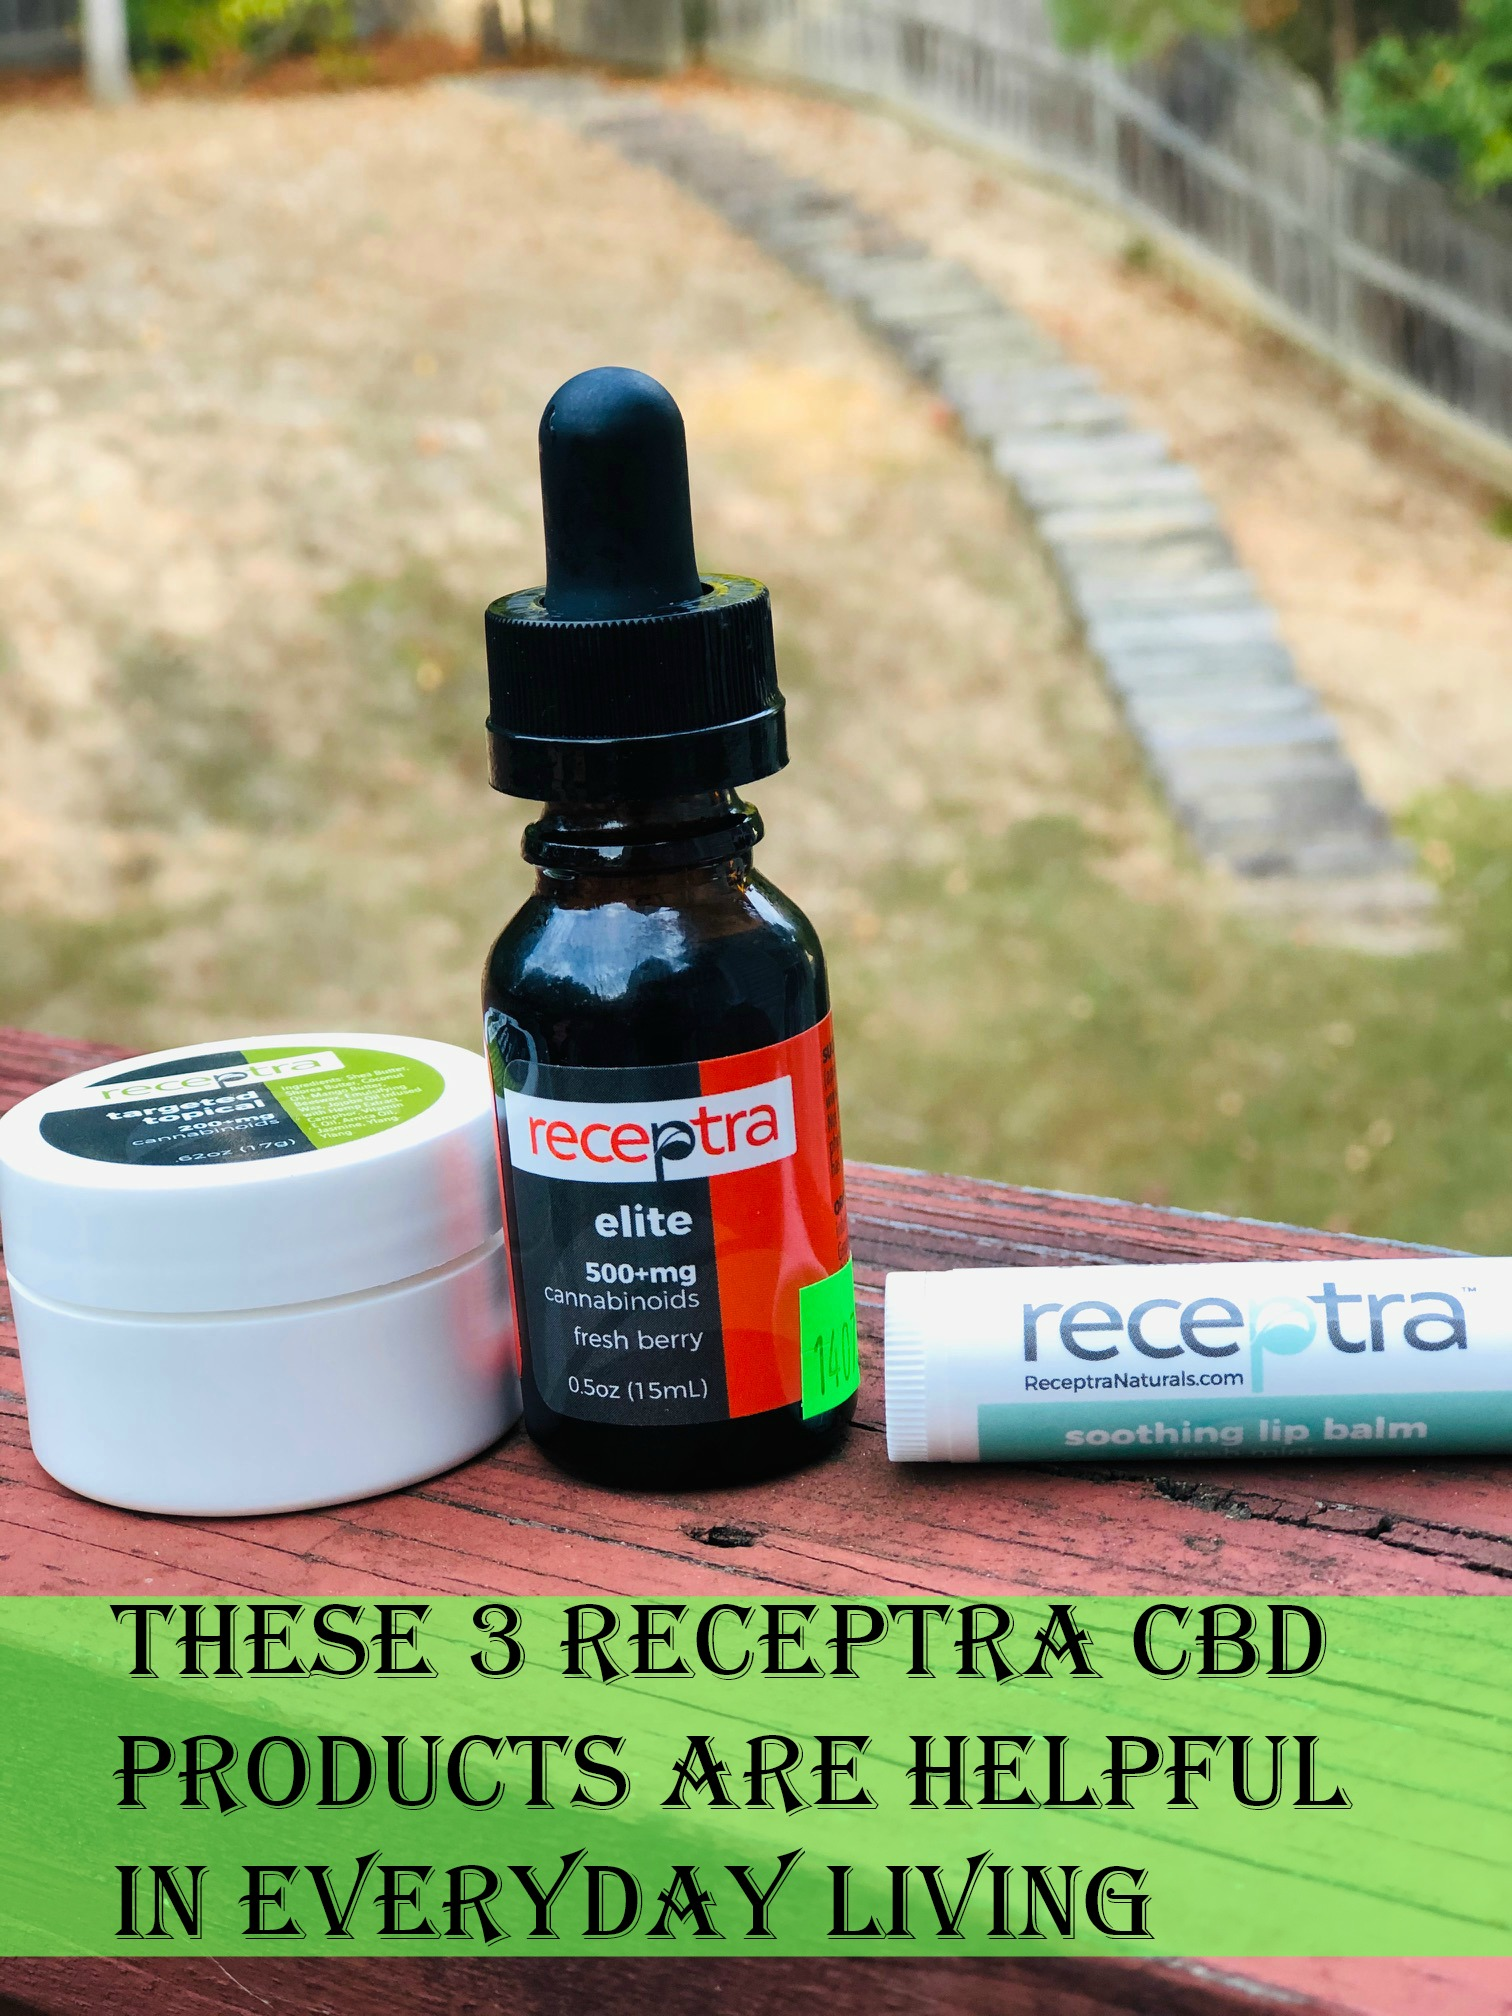 These 3 Receptra CBD Products Are Helpful in Everyday Living